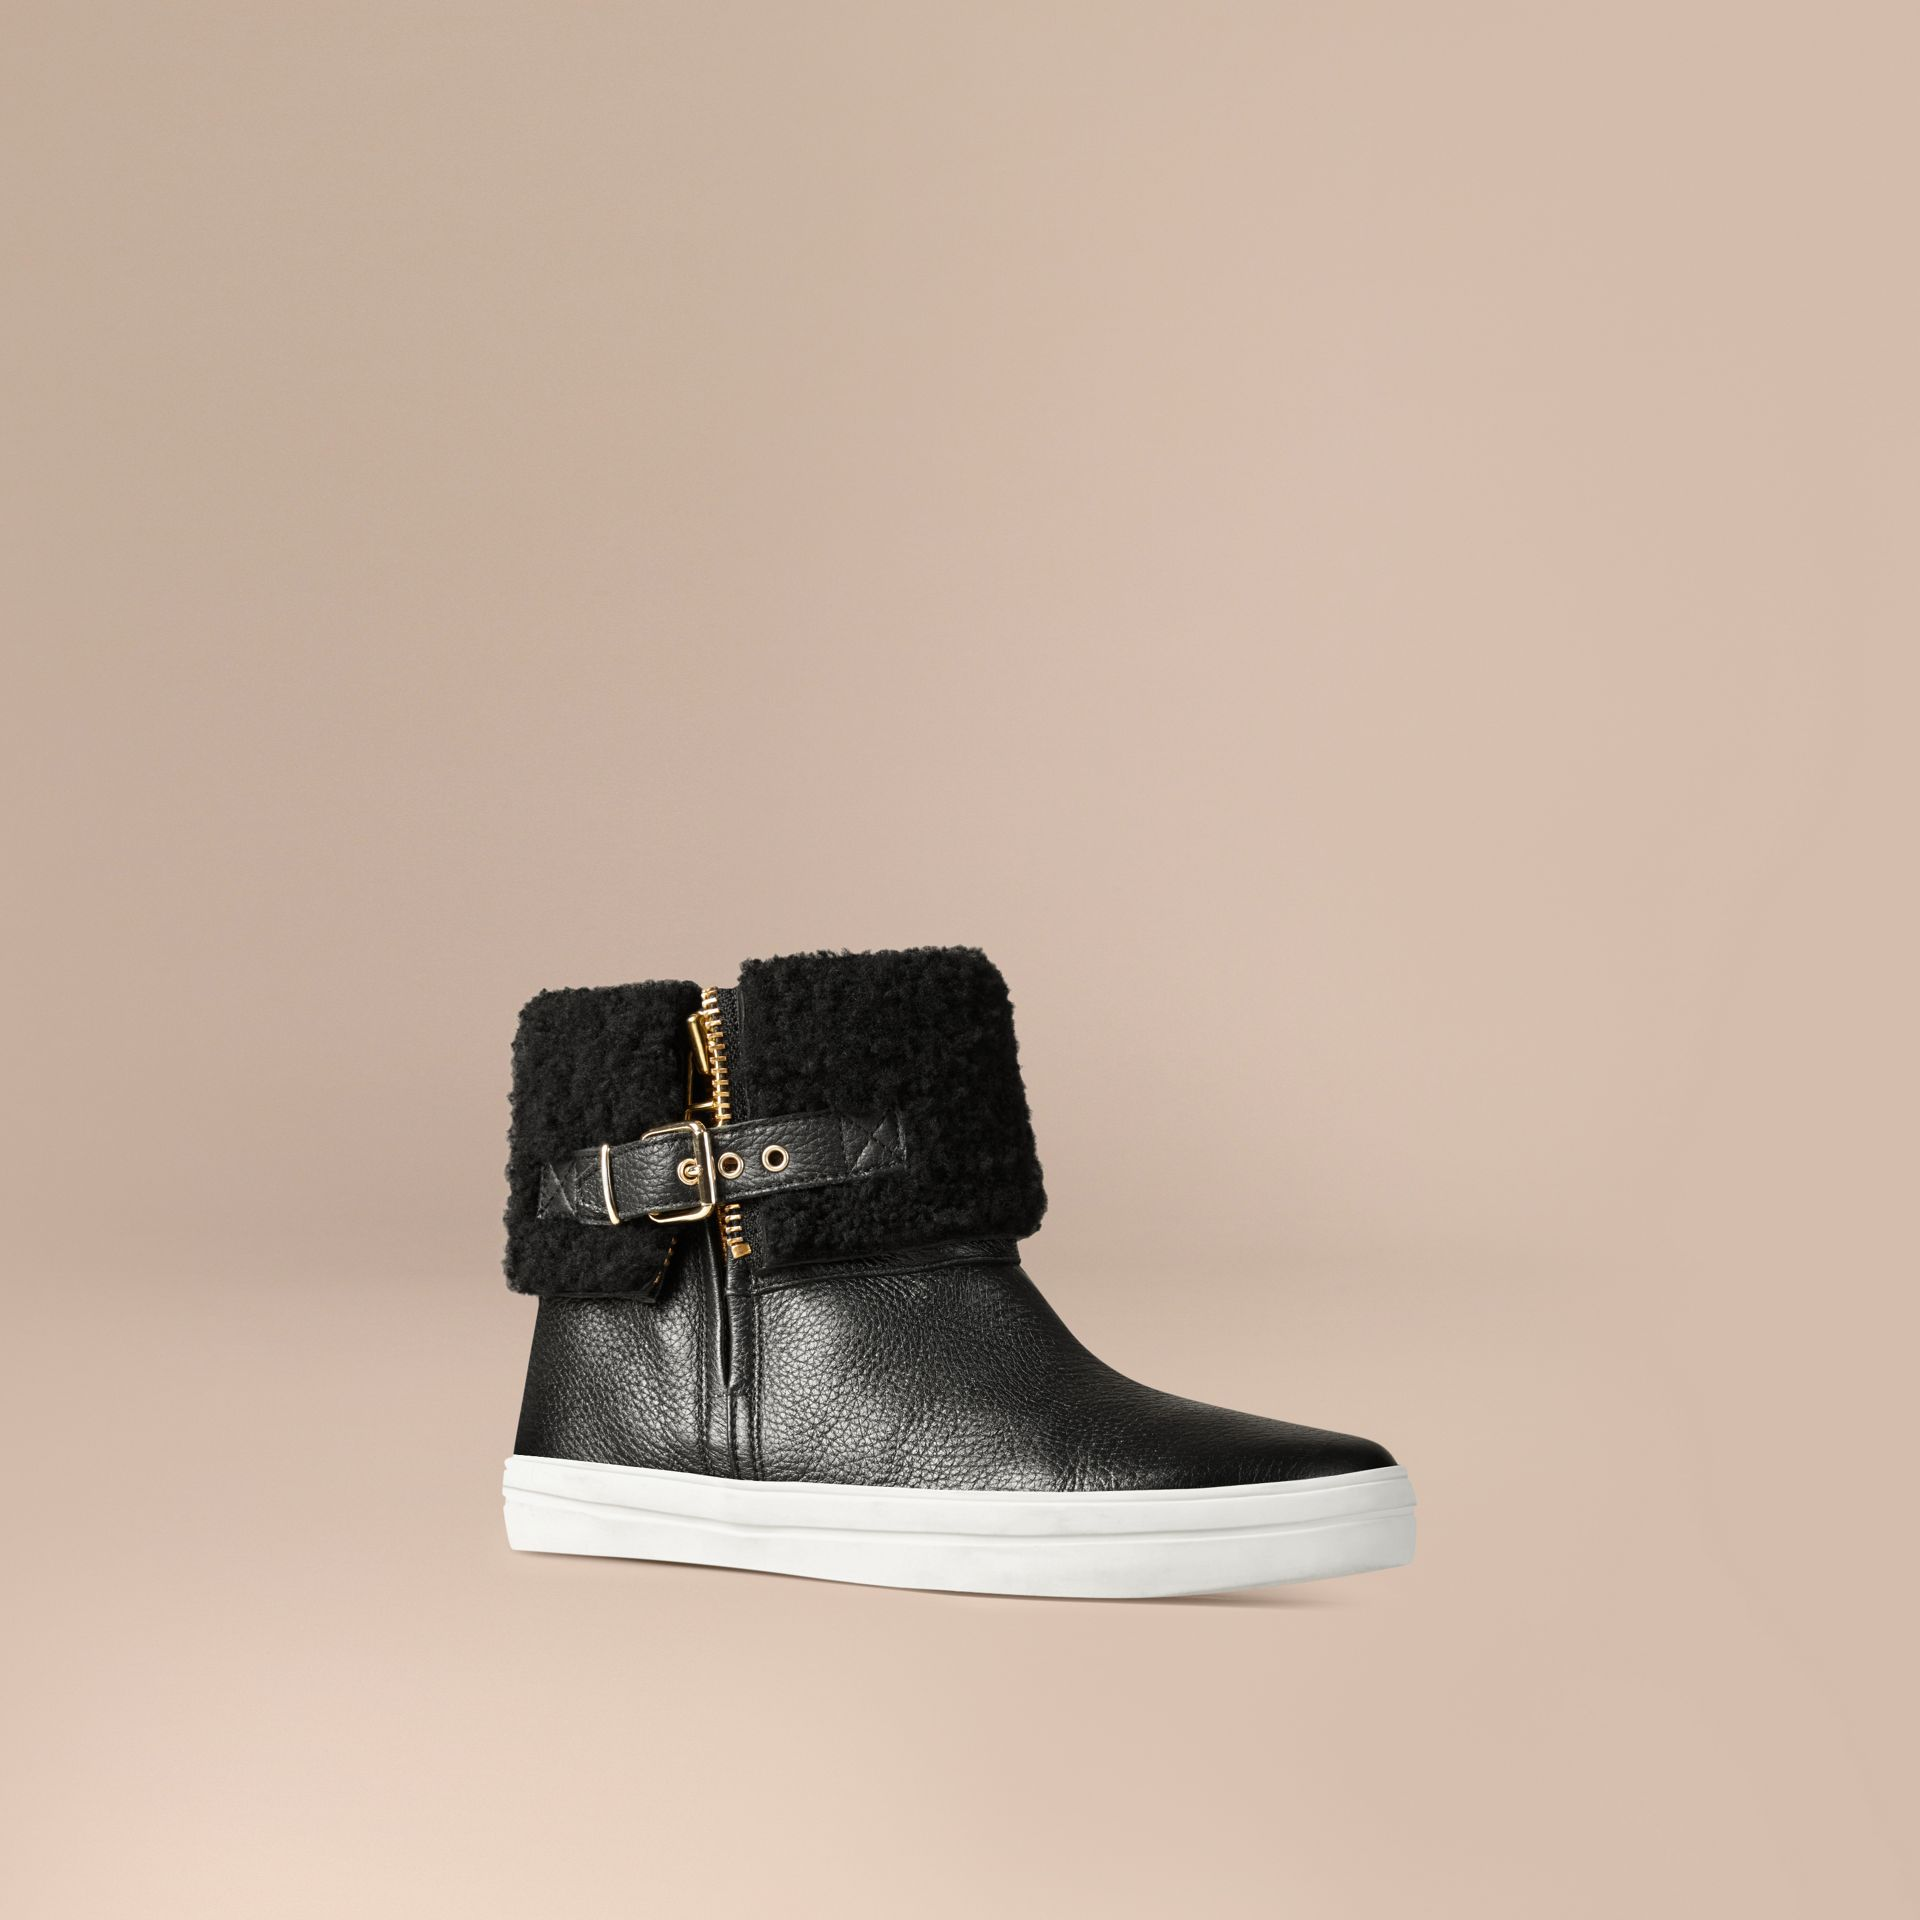 Shearling-lined Grainy Leather Ankle Boots in Black - Women | Burberry United States - gallery image 0